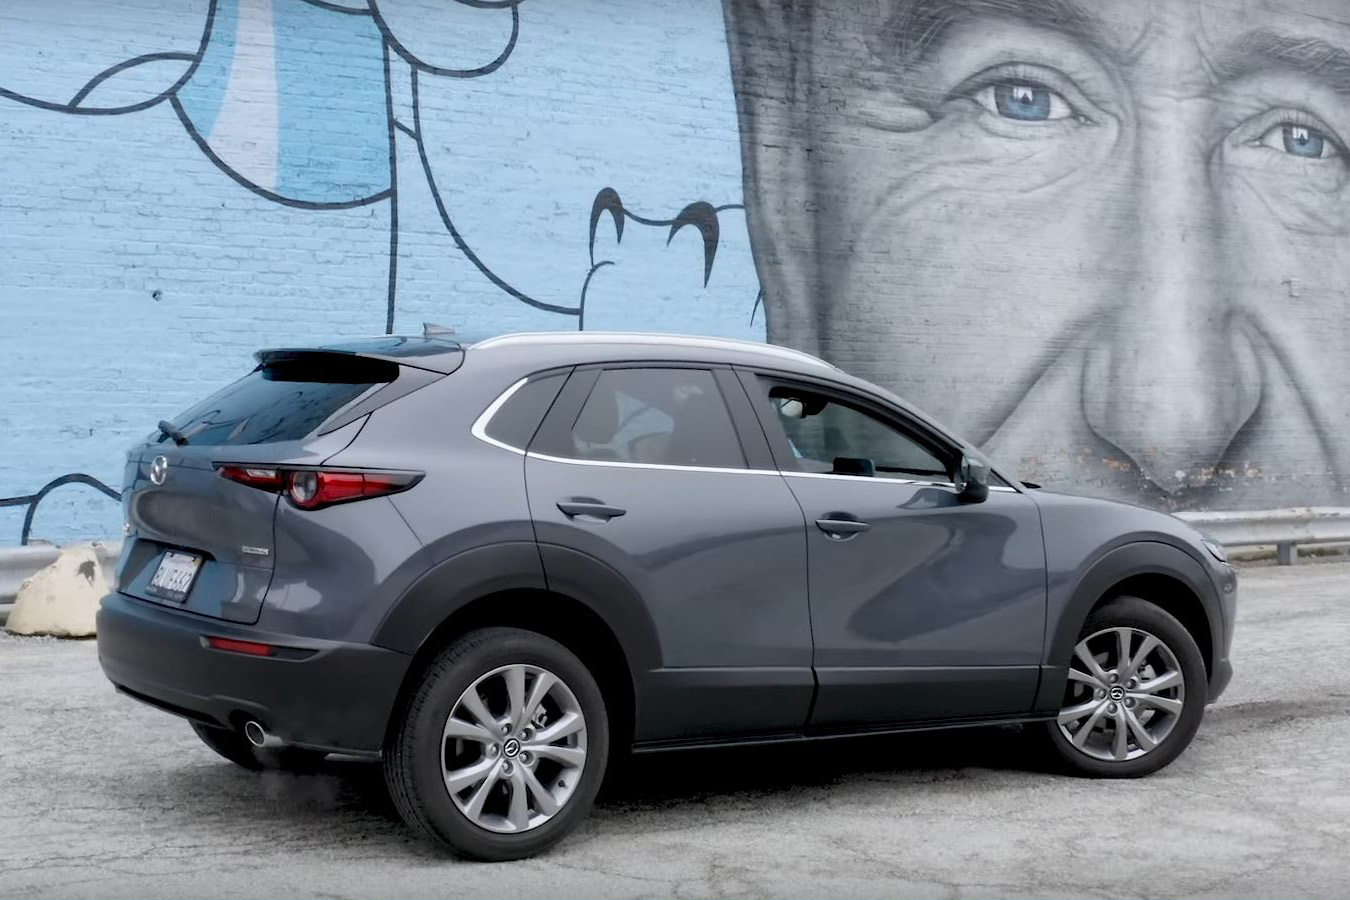 2020 Mazda CX-30 Test-Drive Video: A Better Fun-Size Fit? | News from Cars.com